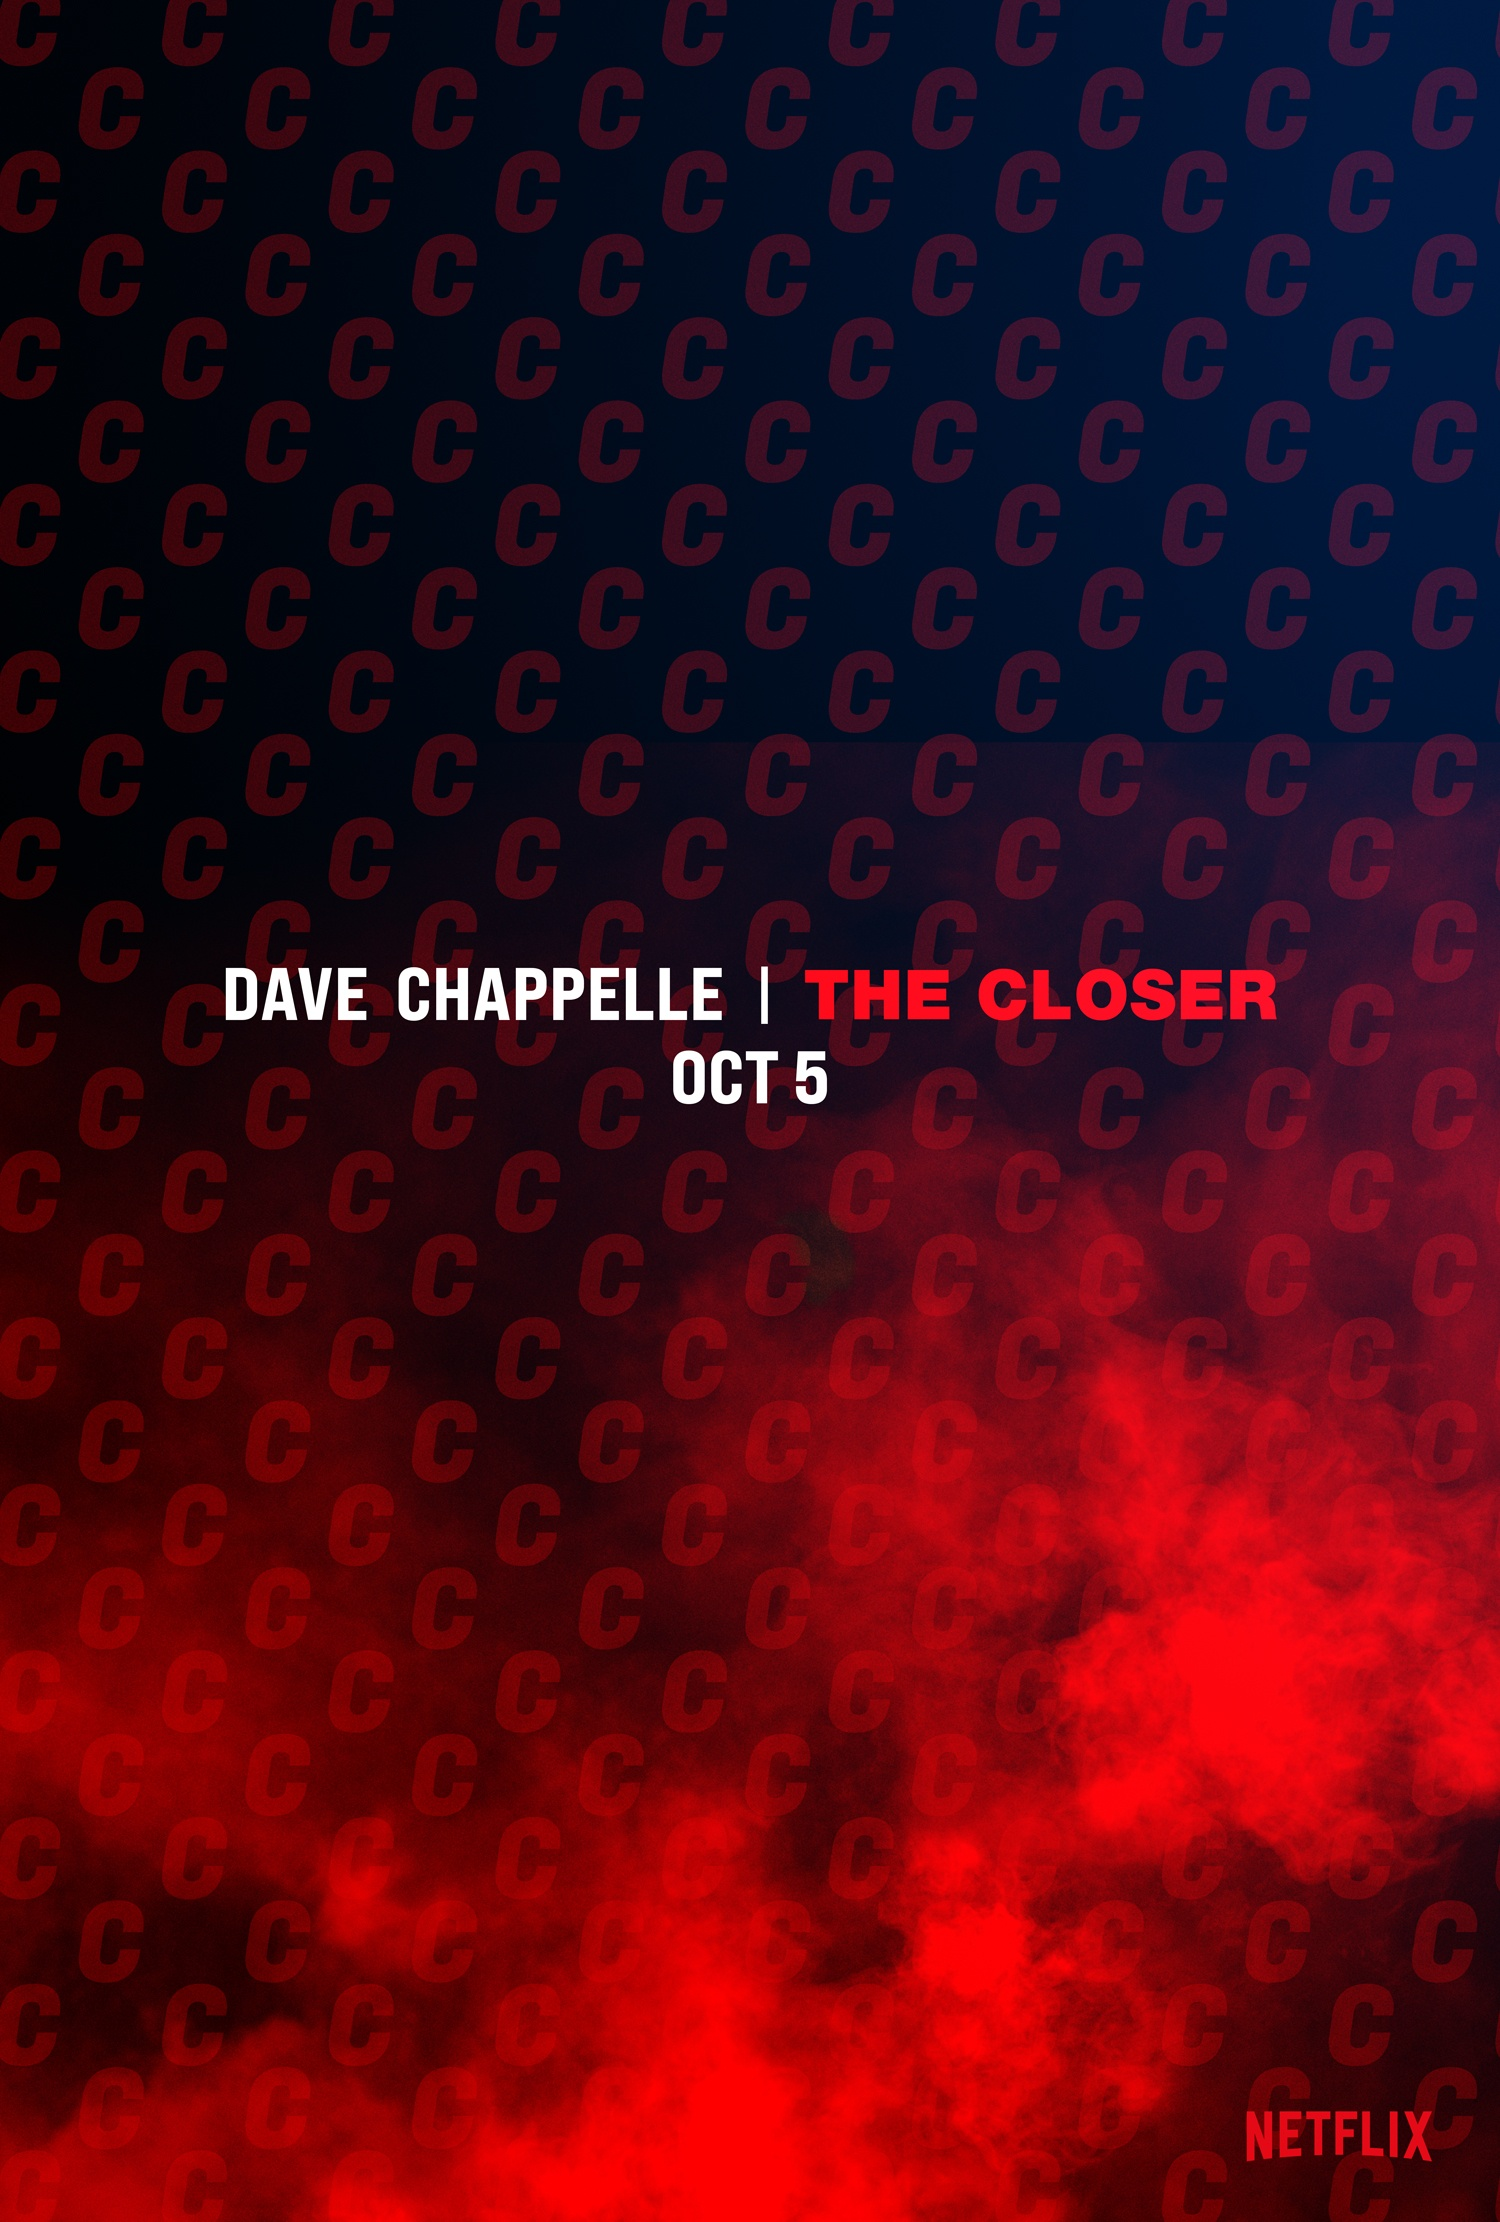 Netflix Announces Dave Chappelle's  Newest Comedy Special, The Closer